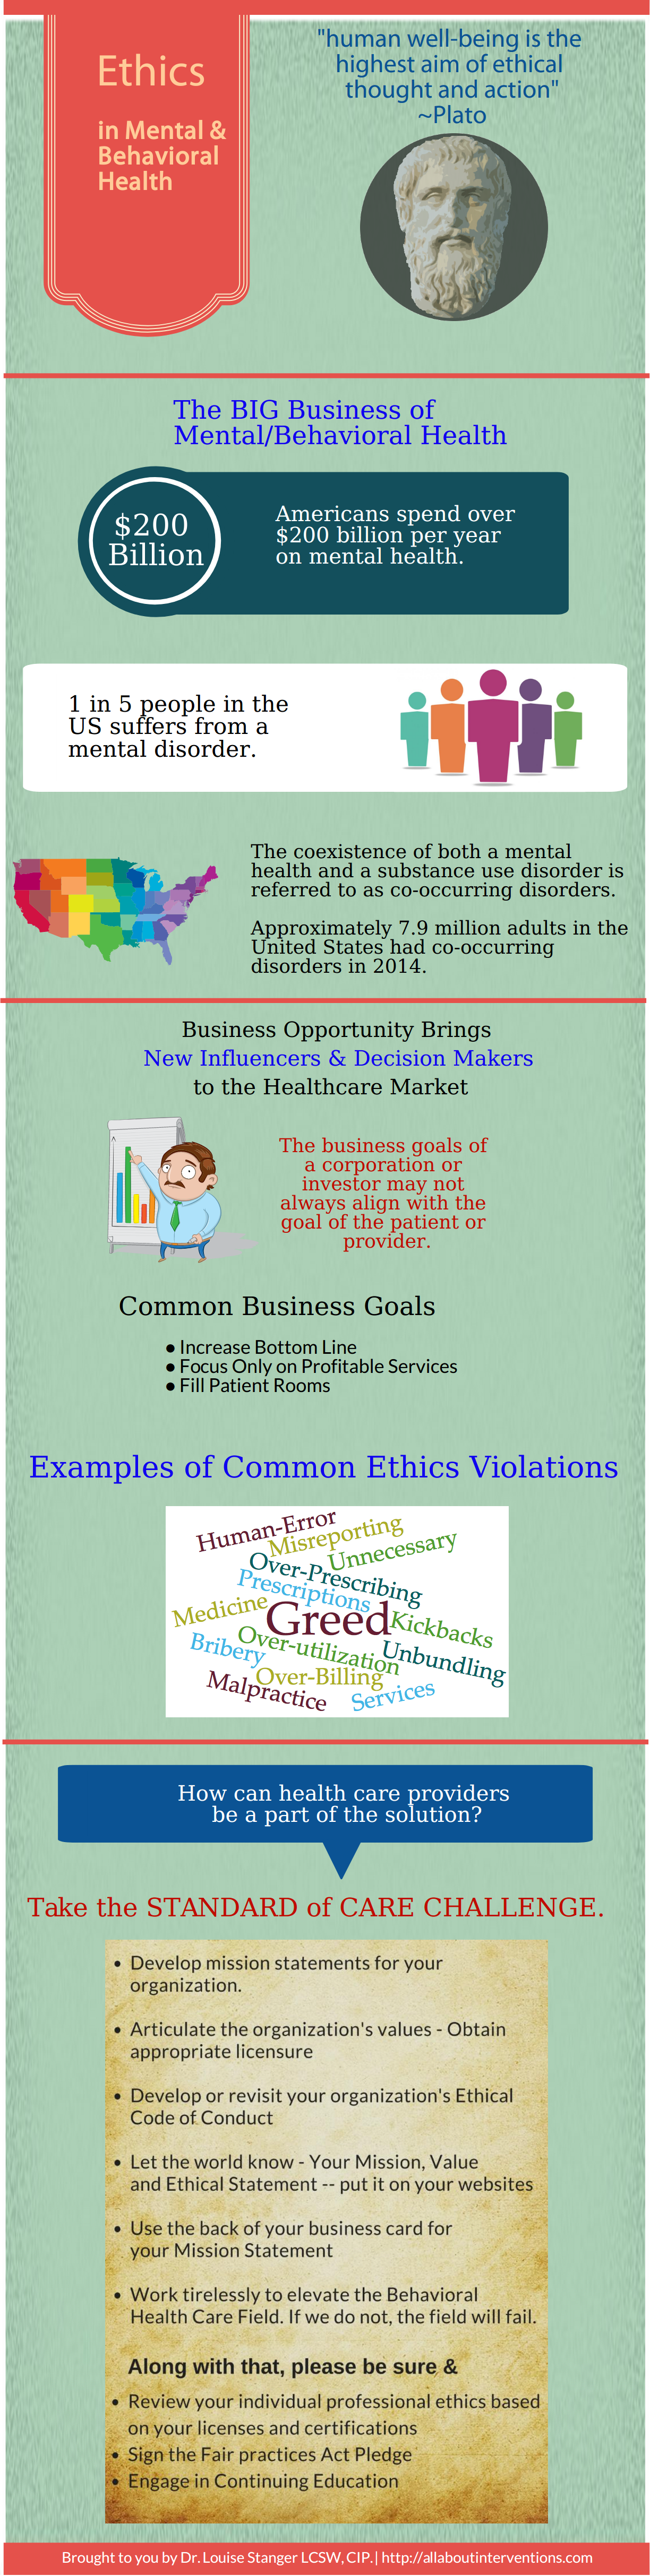 Ethics in Mental and Behavioral Health